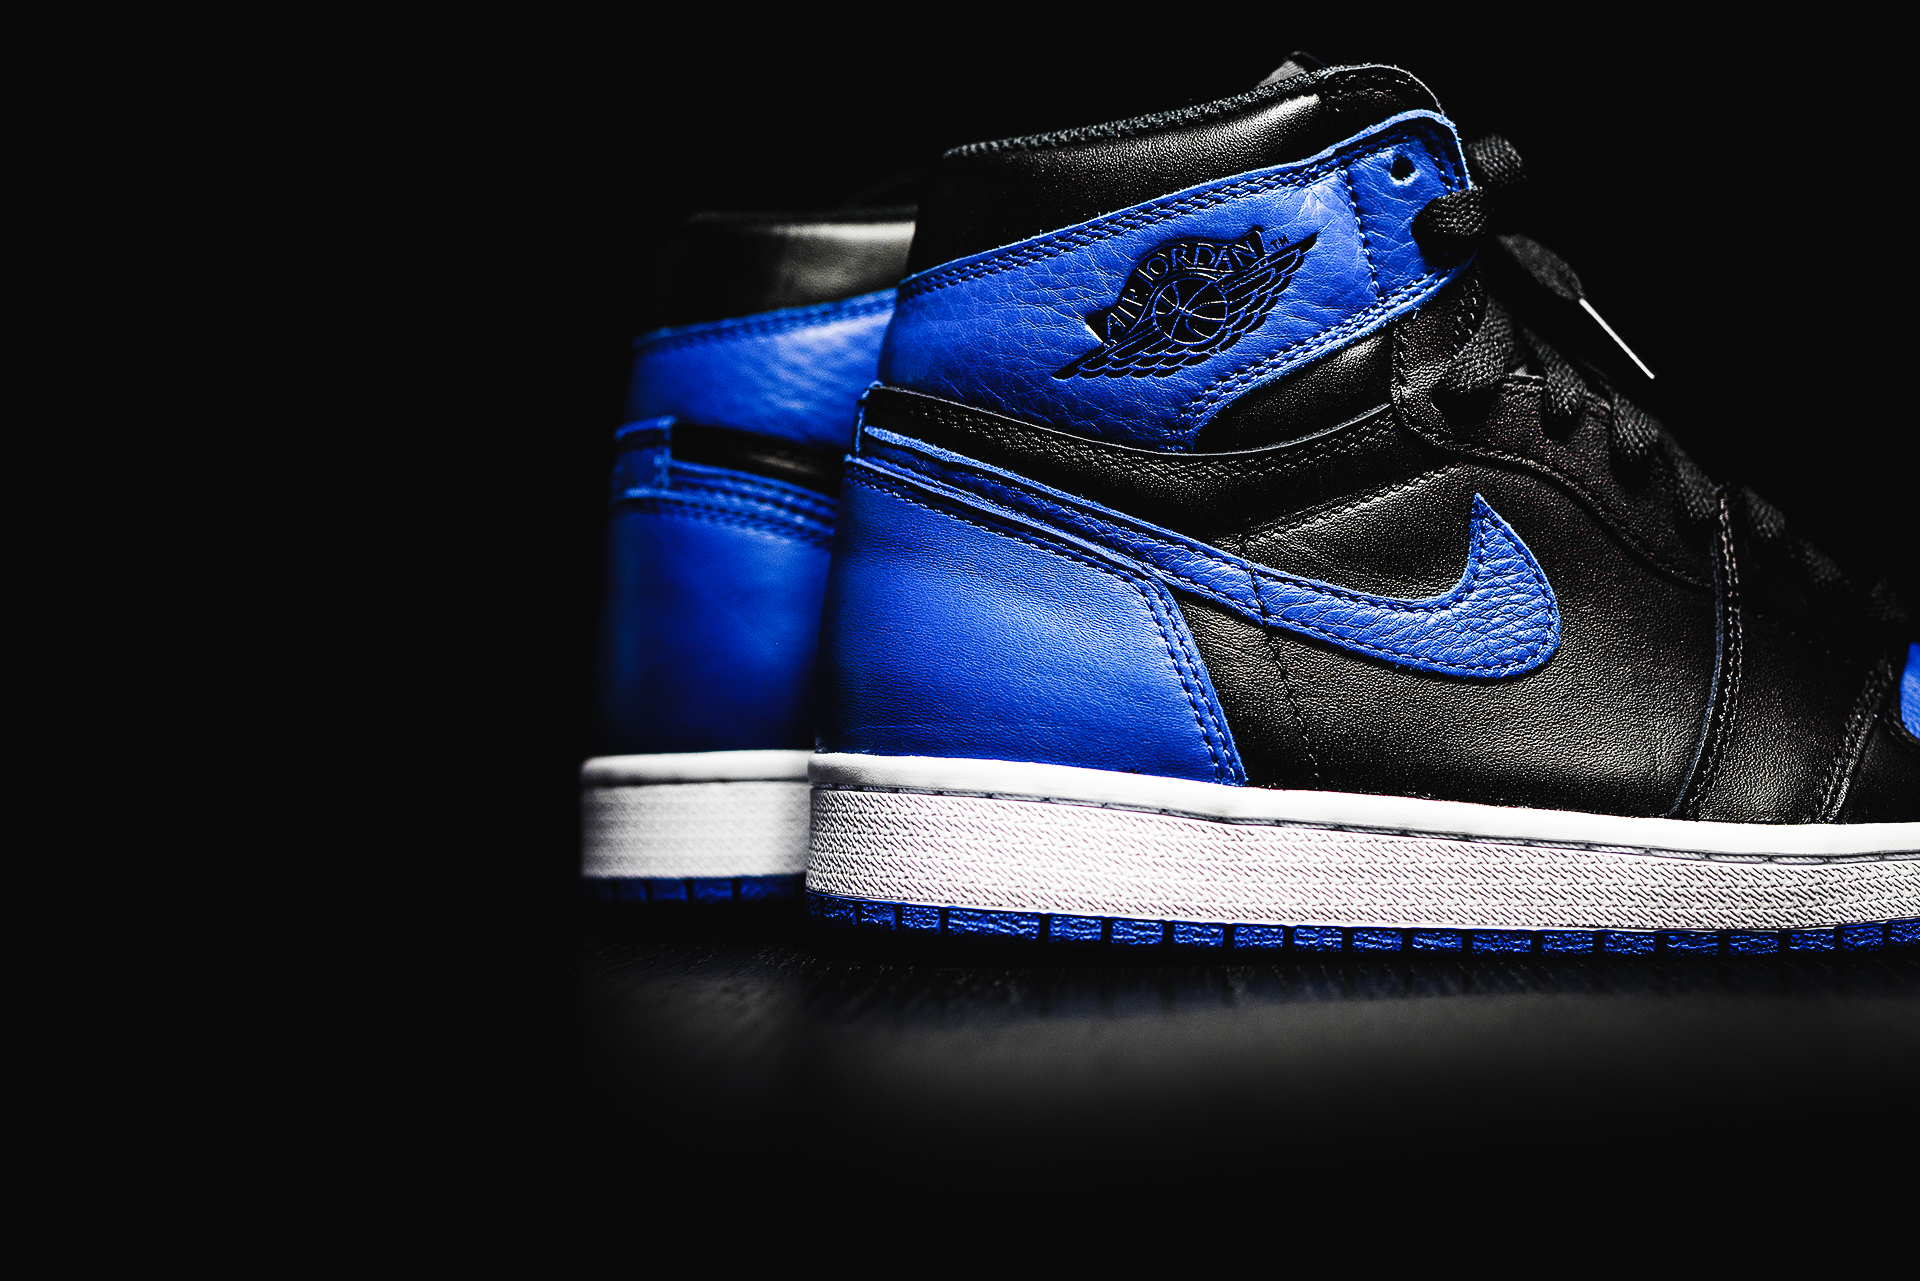 Air Jordan I Retro High Royal charity flint michigan 3